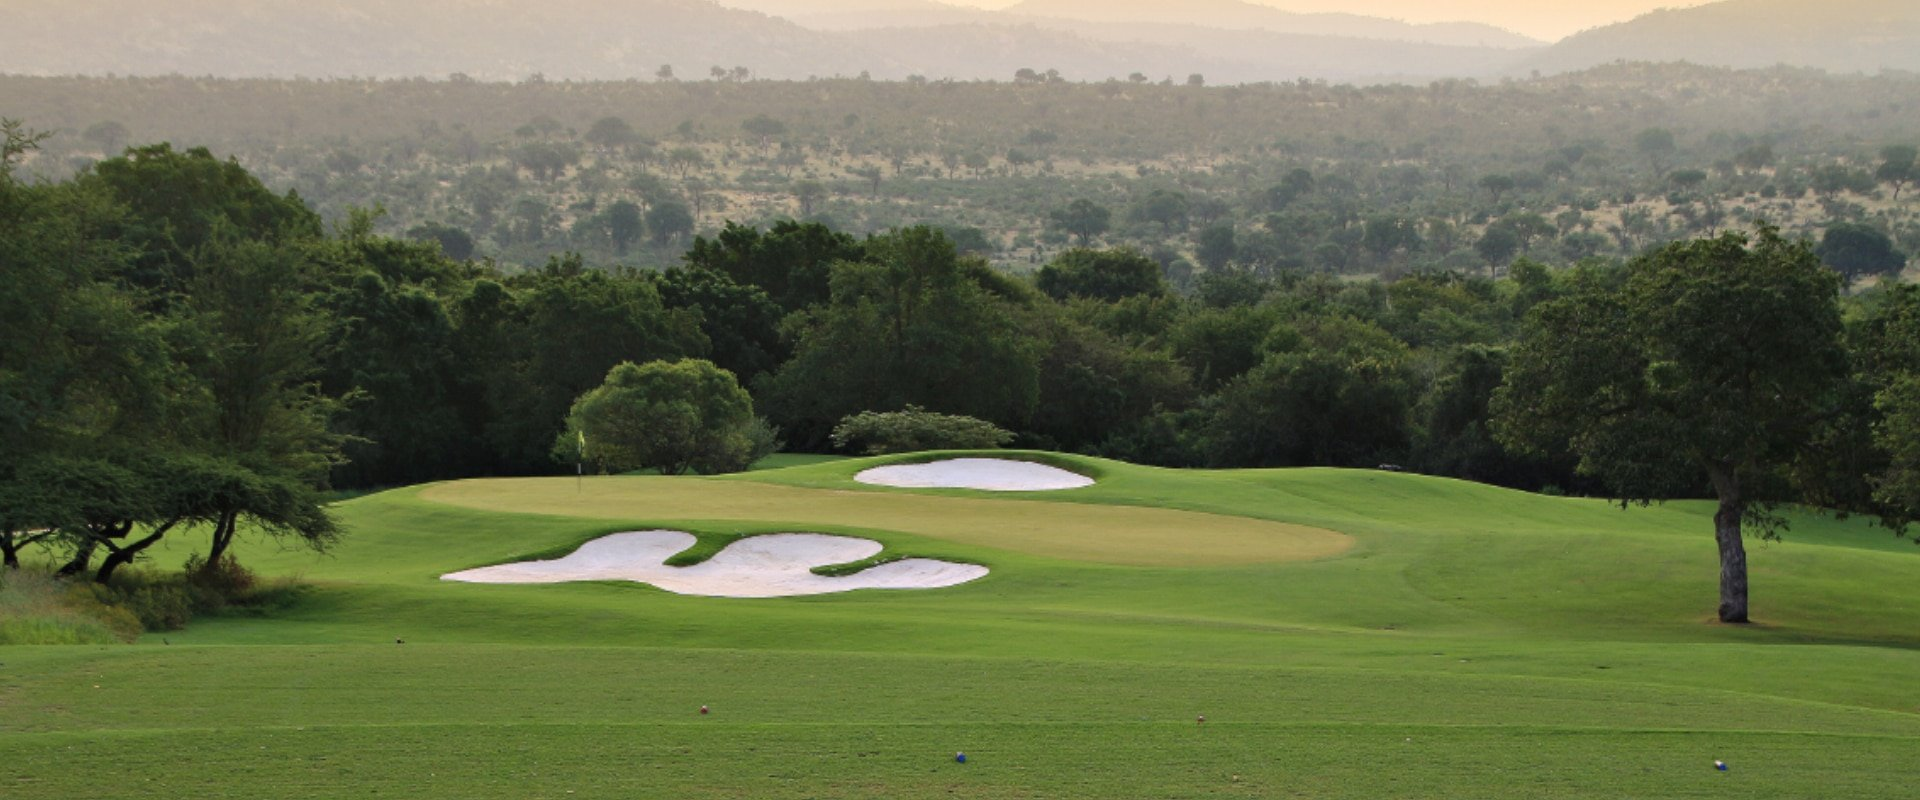 Golf at the famous Leopard Creek Golf Course